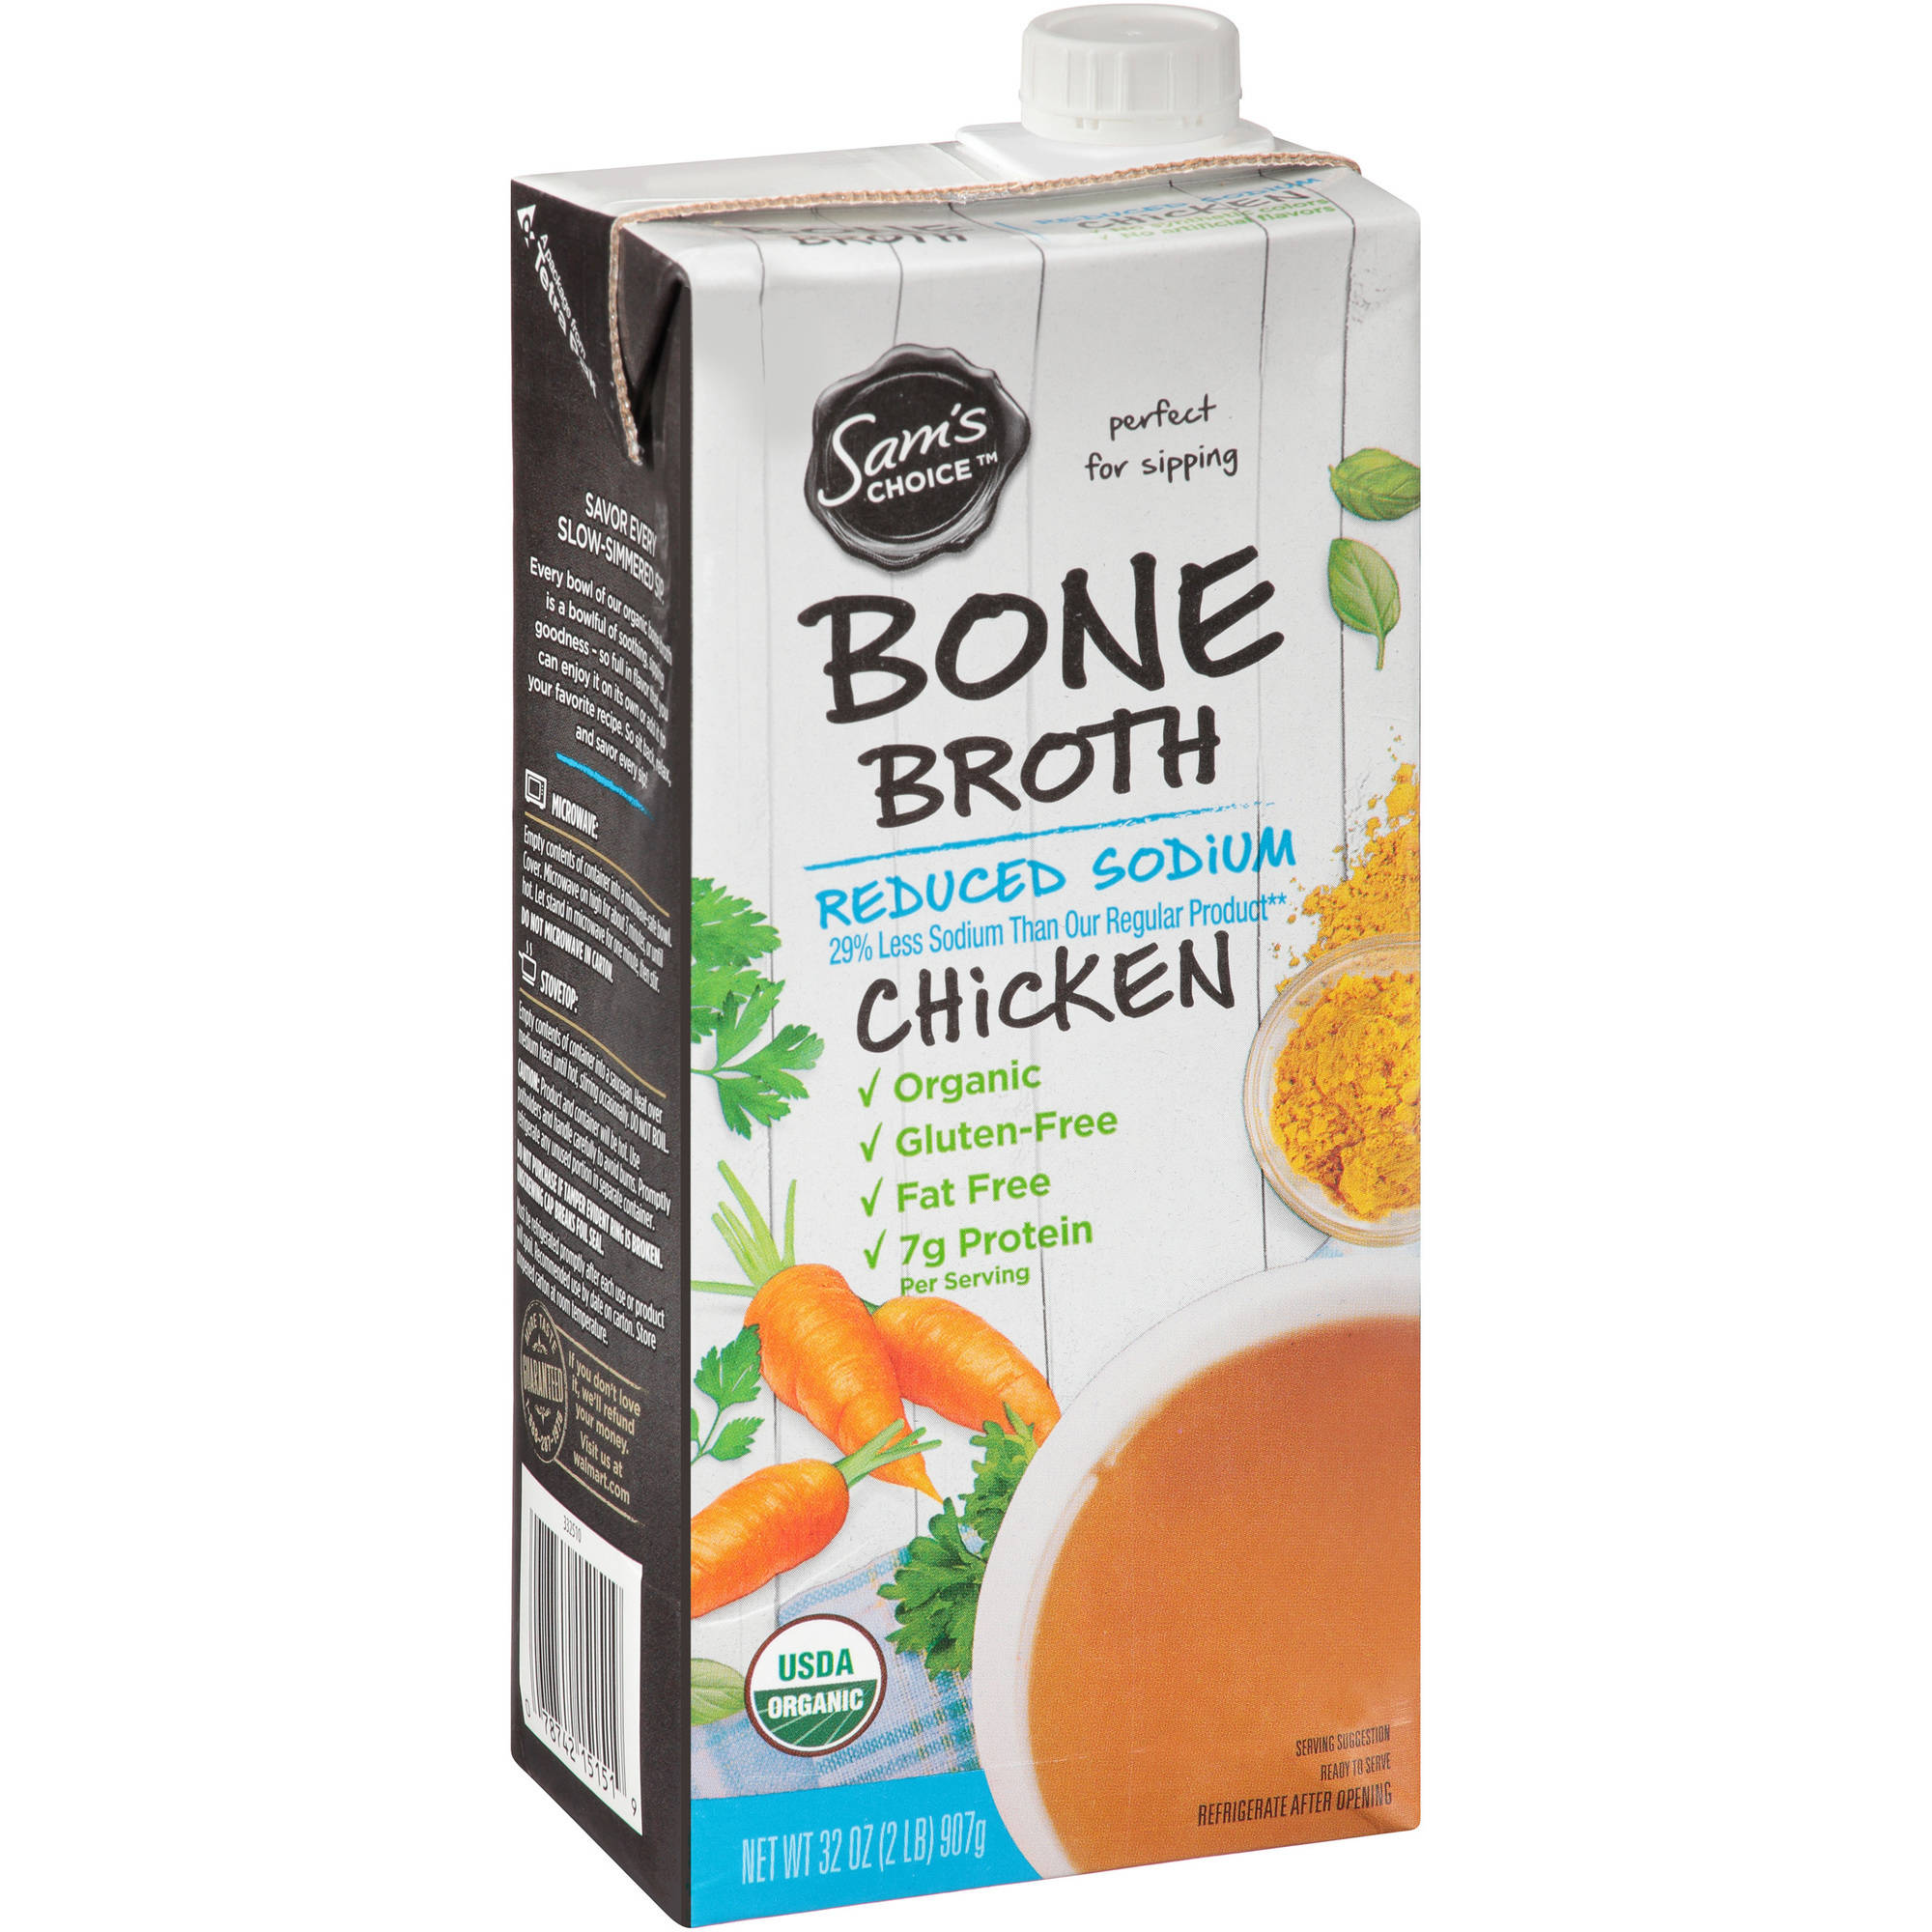 Sam's Choice Chicken Bone Broth Reduced Sodium